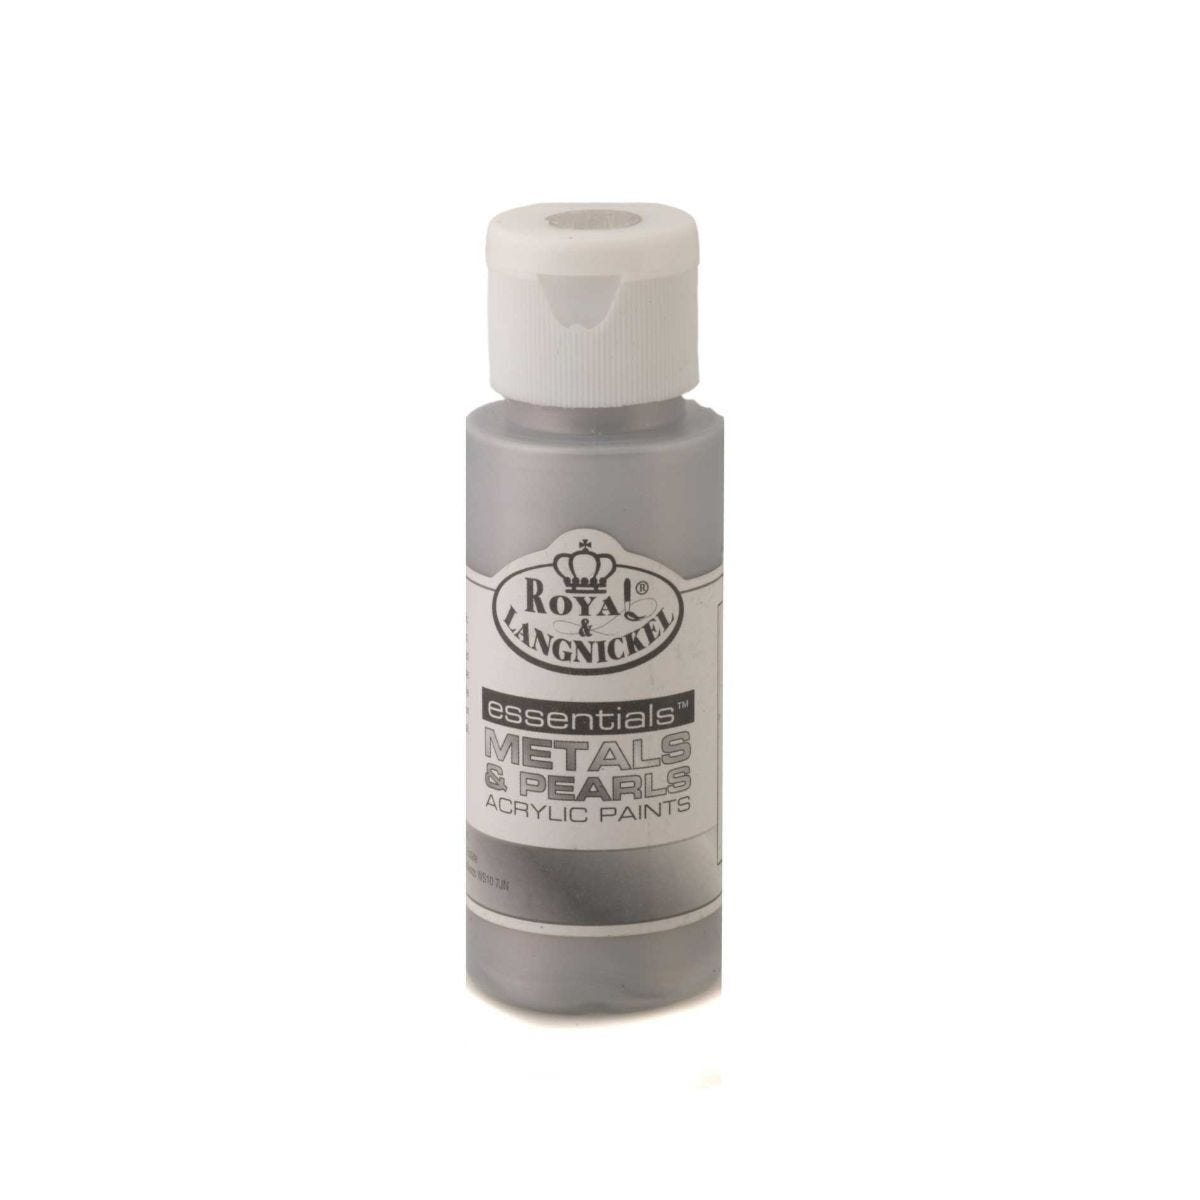 Royal & Langnickel Acrylic Paint 59ml